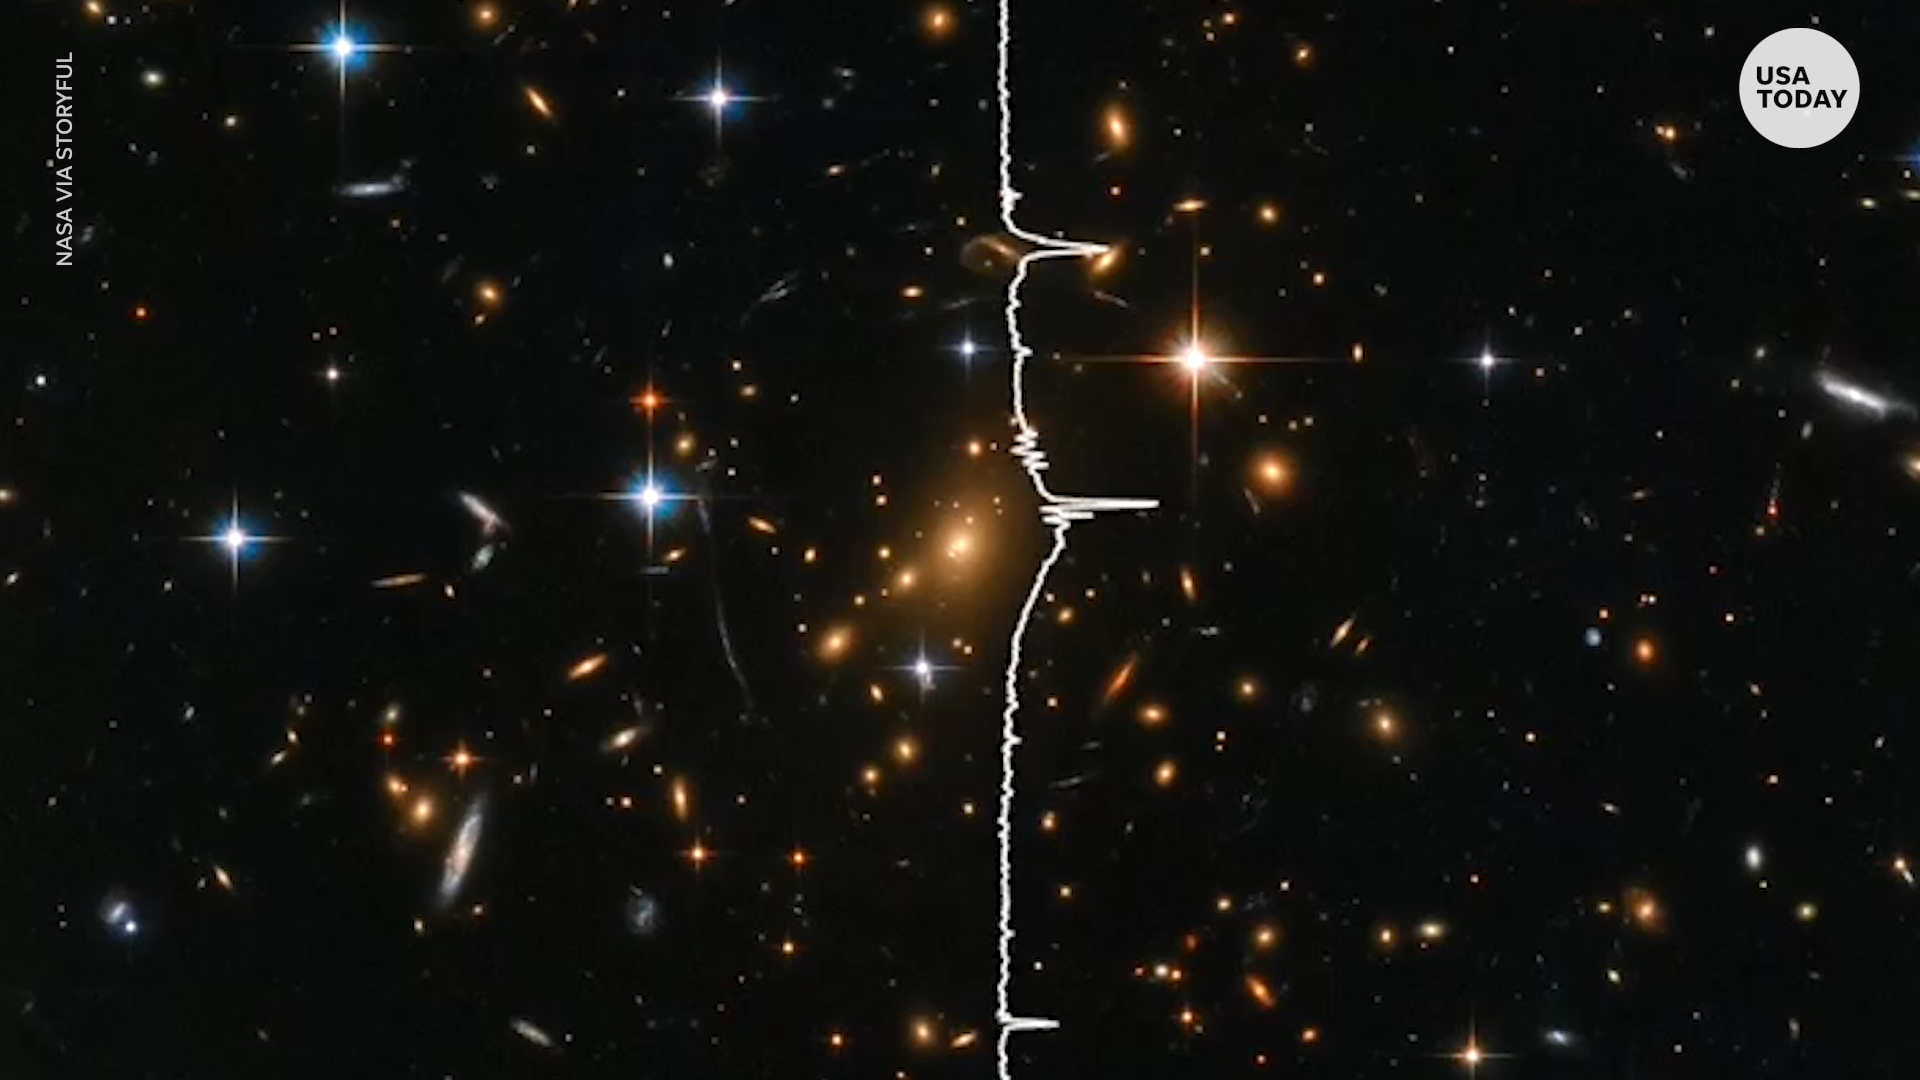 NASA shared an audio rendition of imagery taken by the Hubble Space Telescope